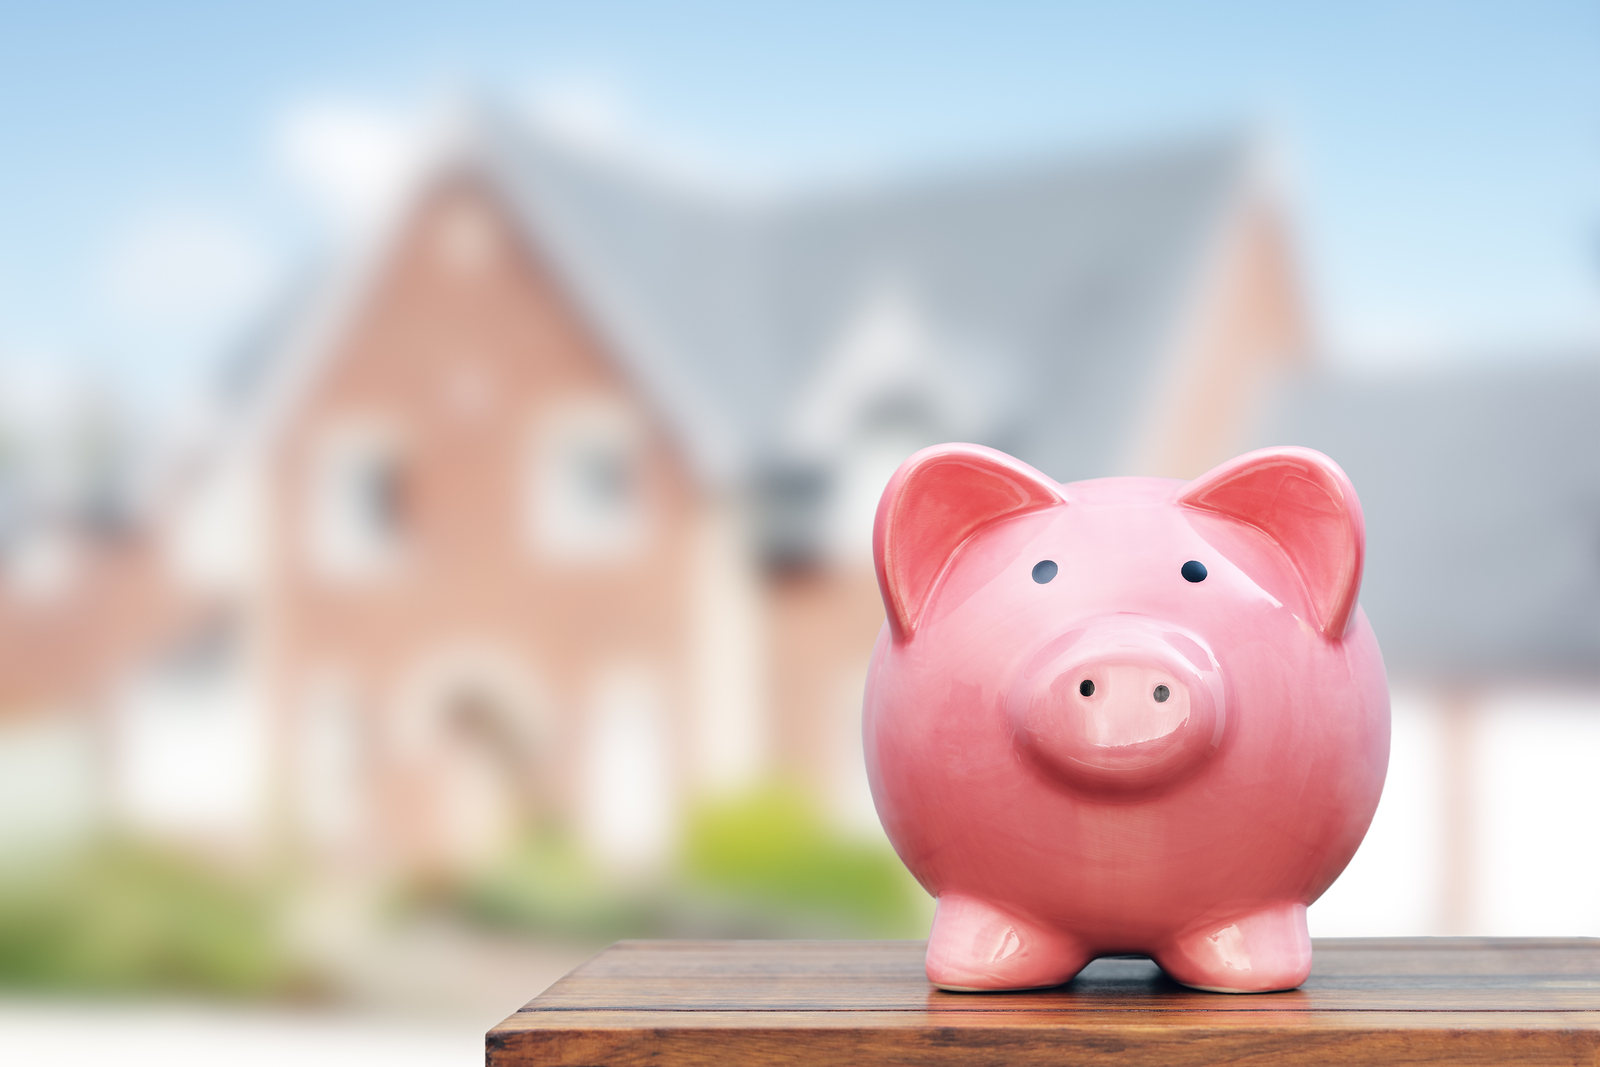 bigstock-Saving-to-buy-a-house-real-es-103705649